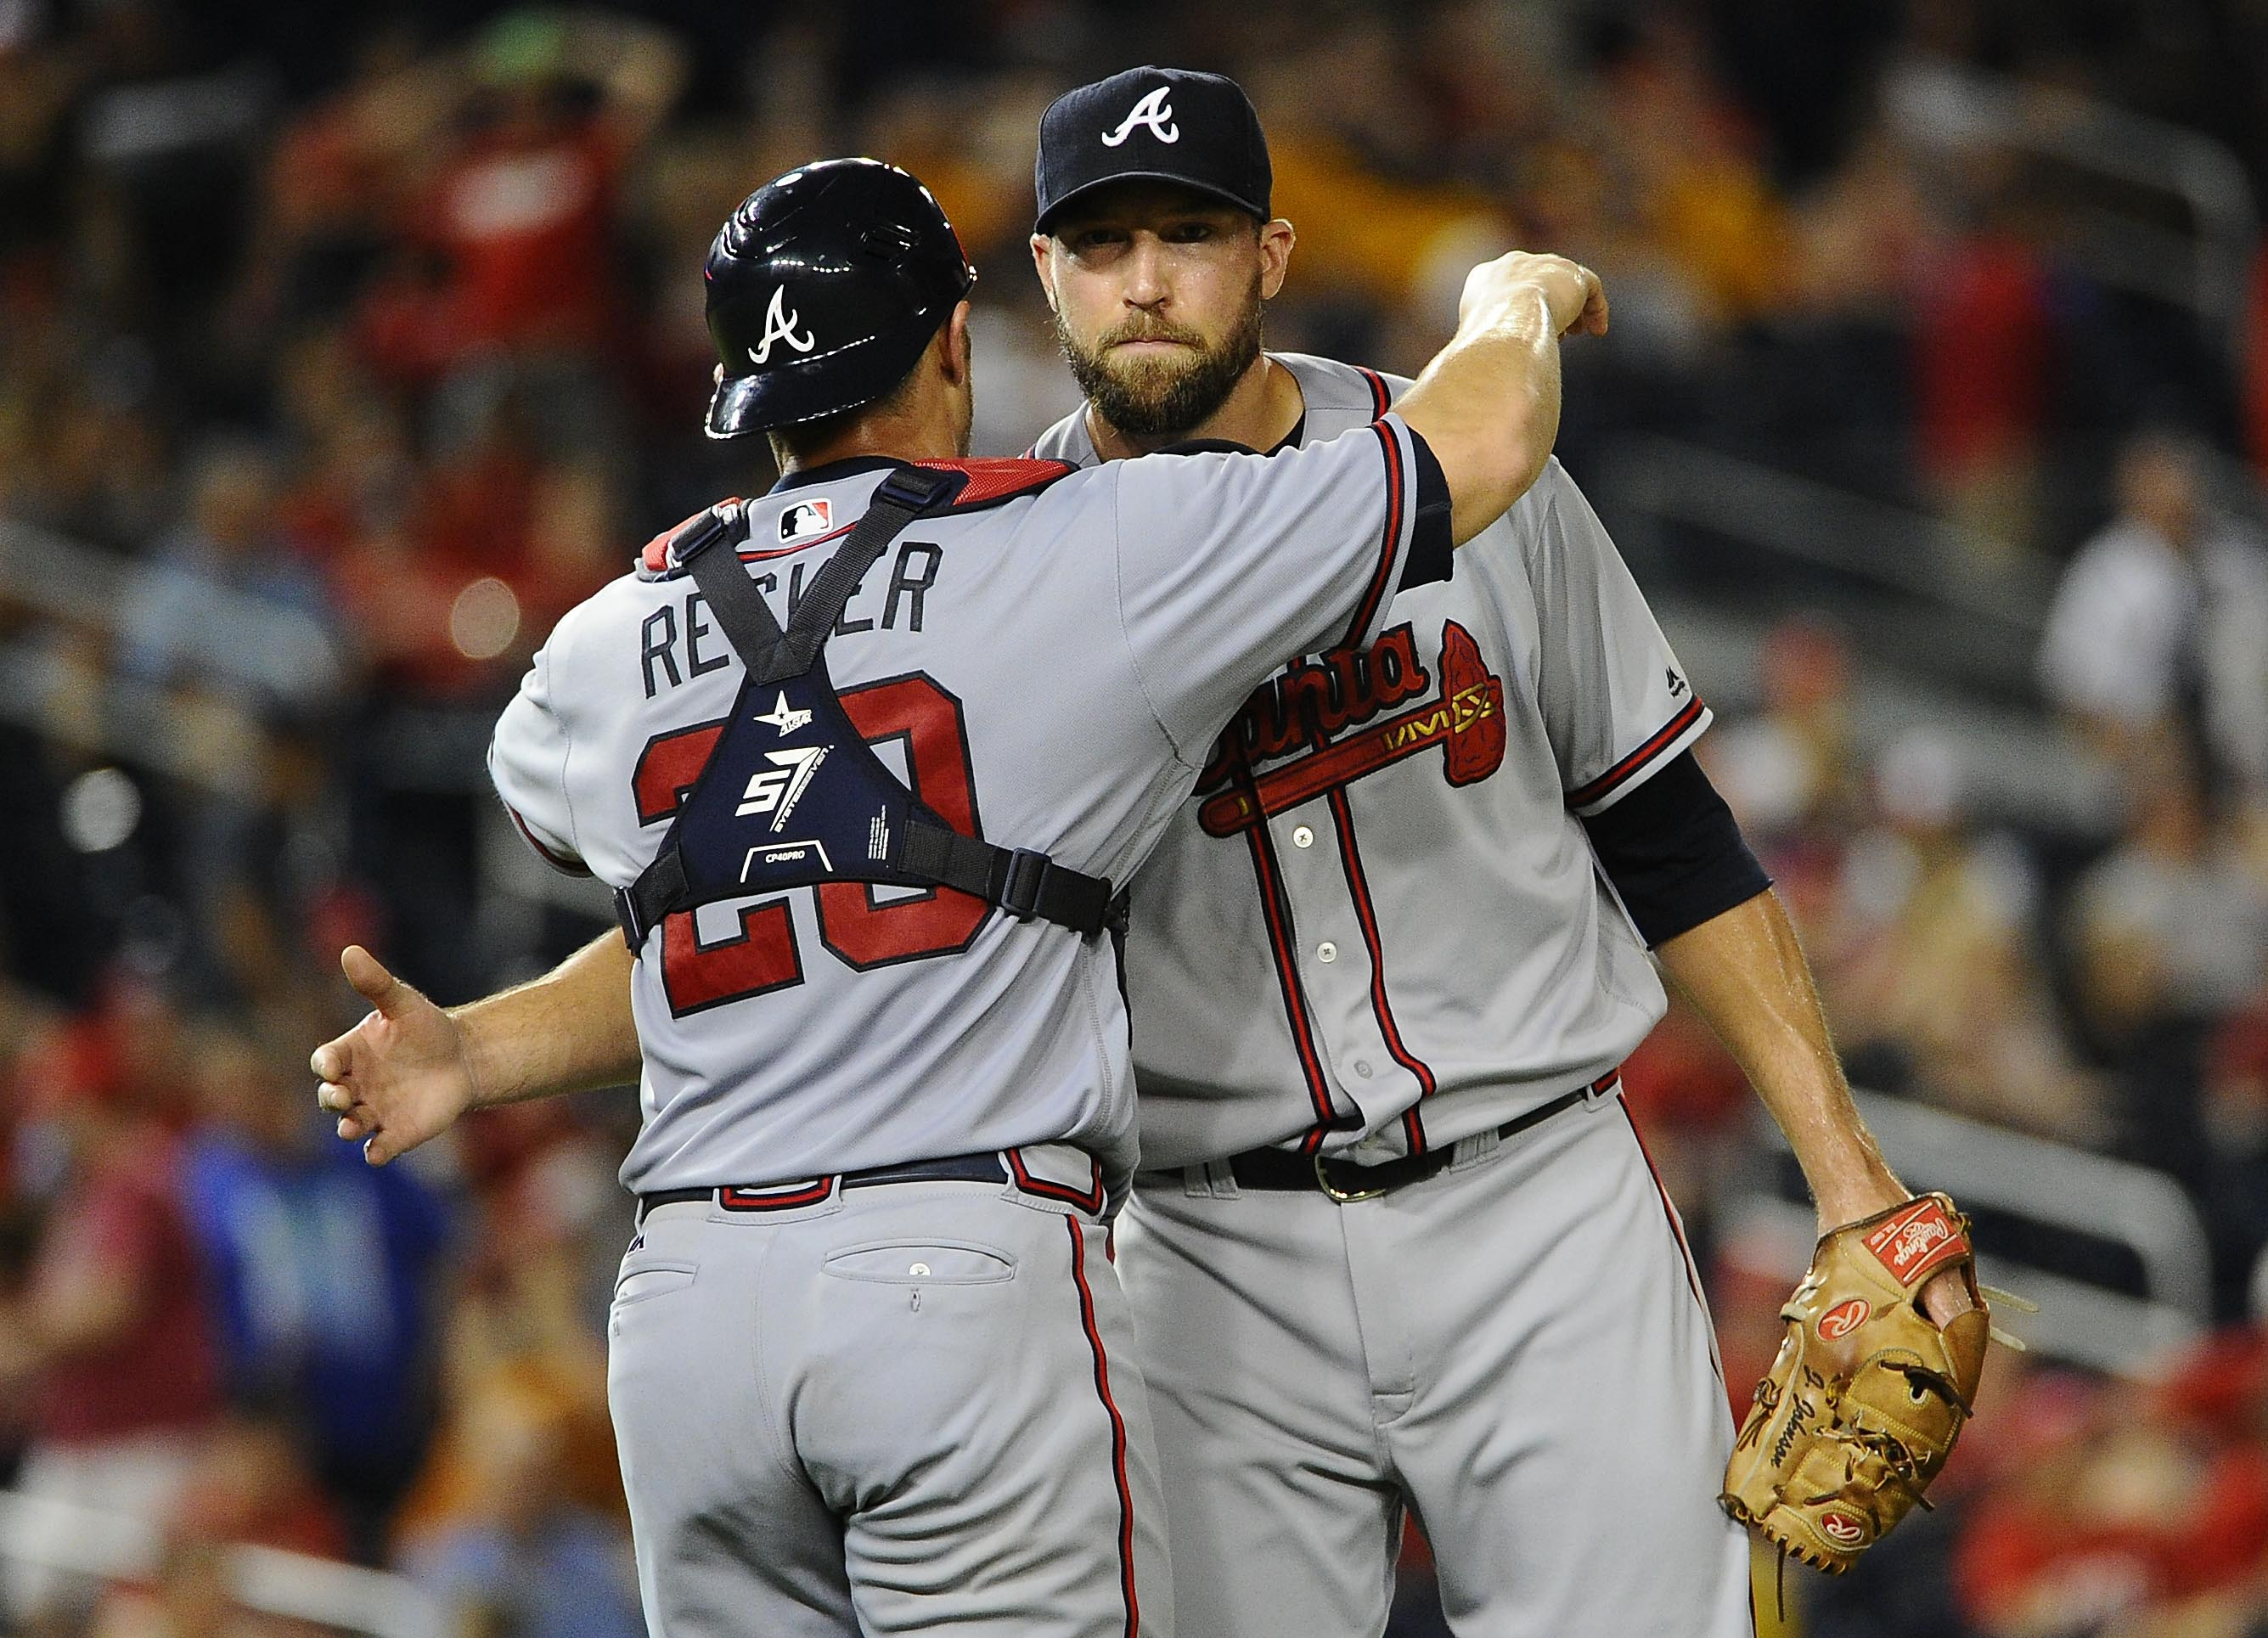 Aug 12, 2016; Washington, DC, USA; Atlanta Braves relief pitcher Jim Johnson (53) is congratulated by catcher Anthony Recker (20) after earning a save against the Washington Nationals at Nationals Park. Mandatory Credit: Brad Mills-USA TODAY Sports